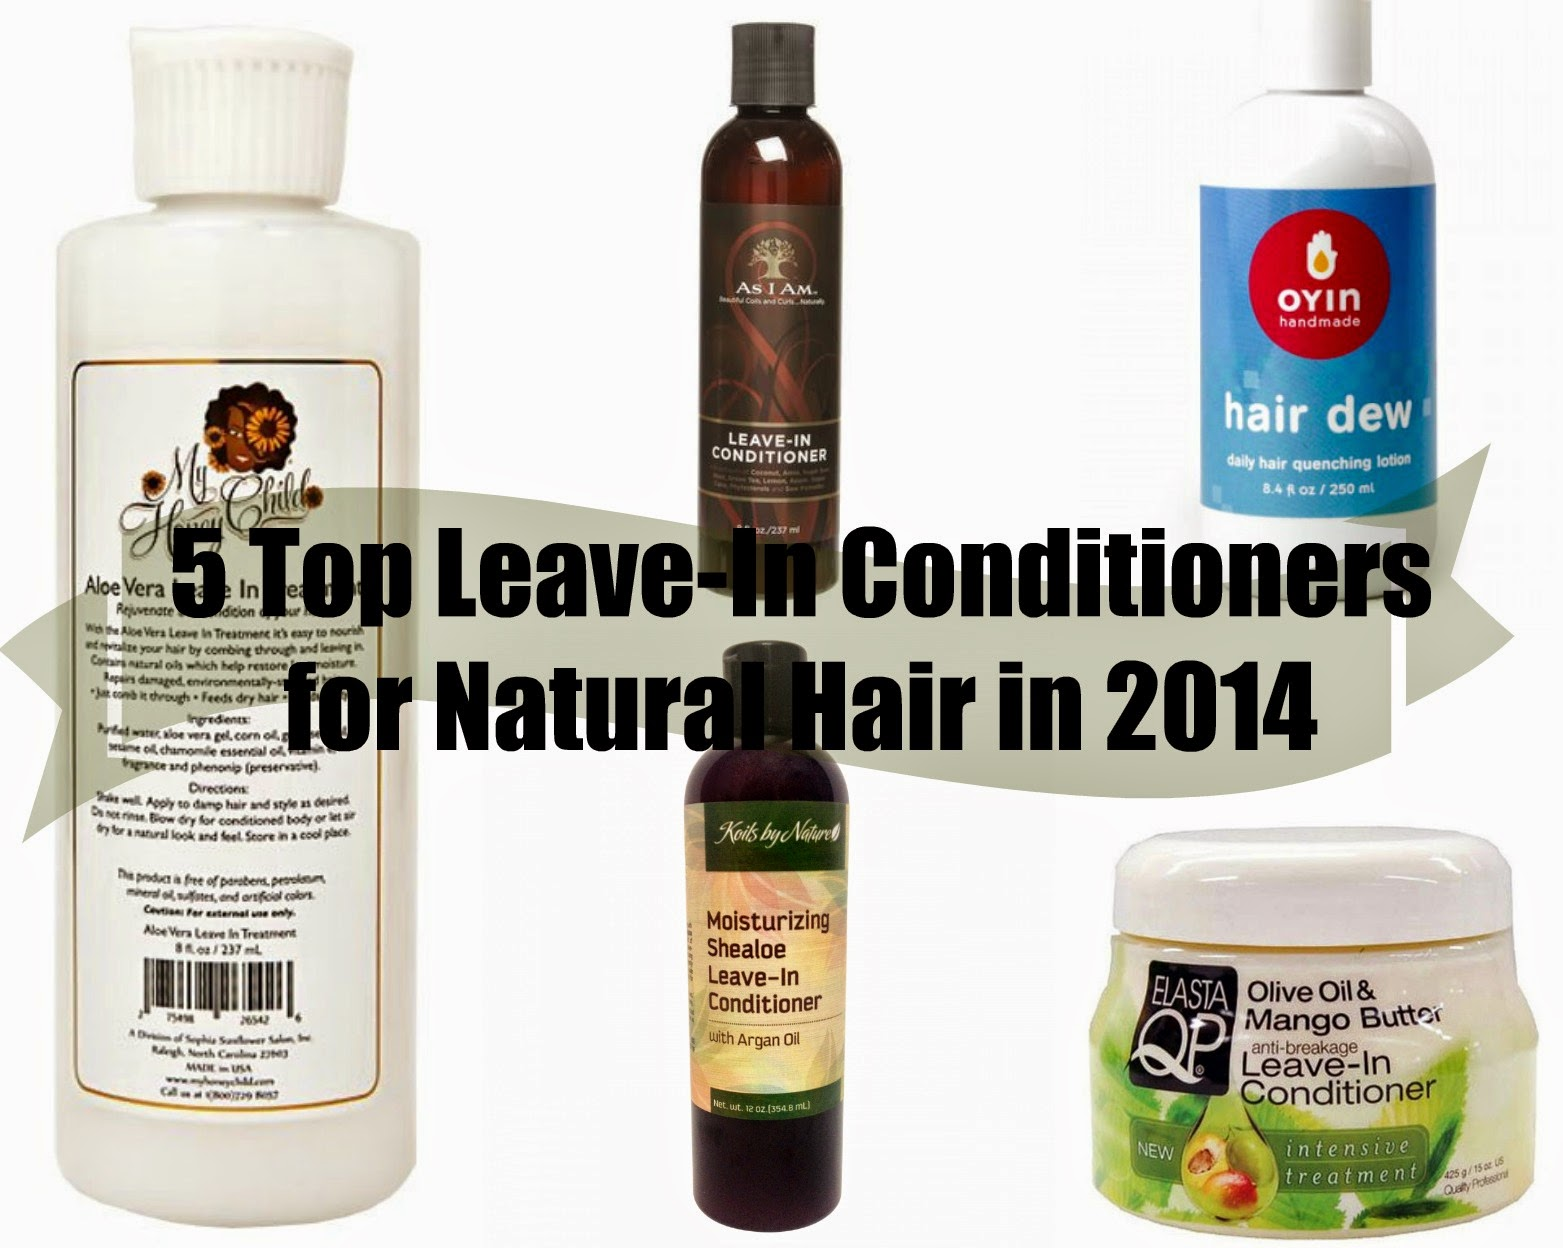 My Favorite and most used LeaveIn Conditioners for